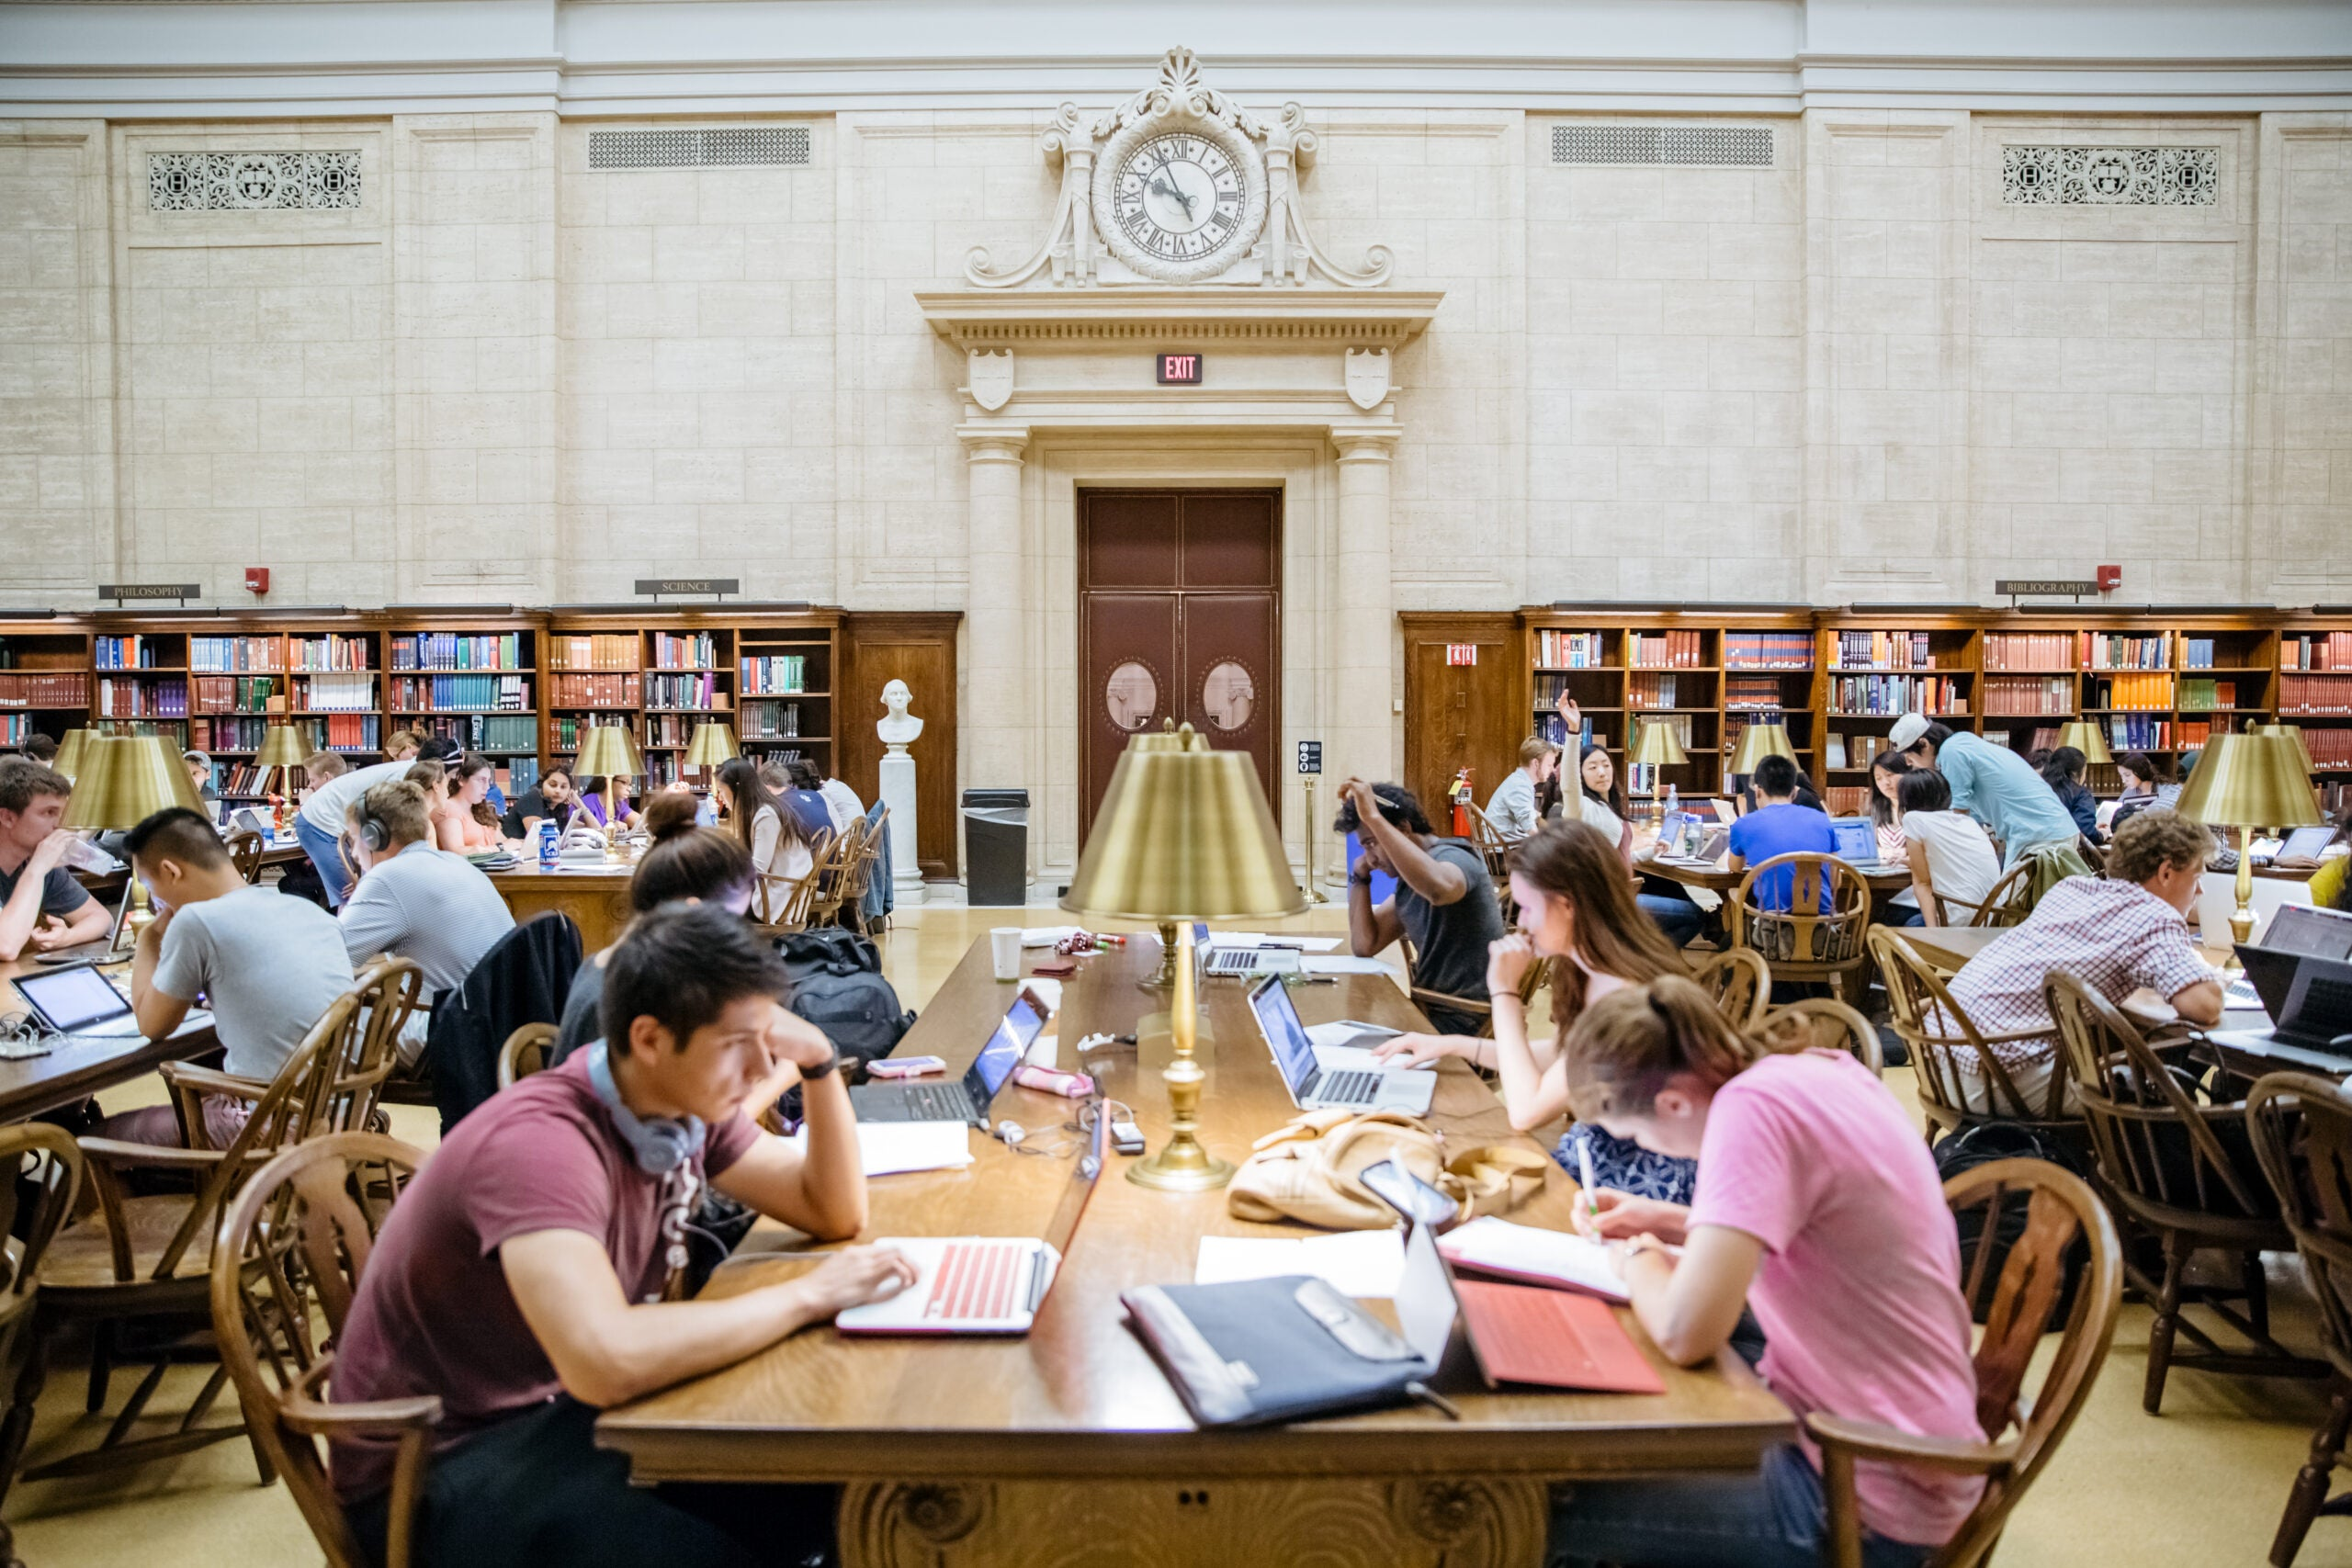 Library desks filled with students.